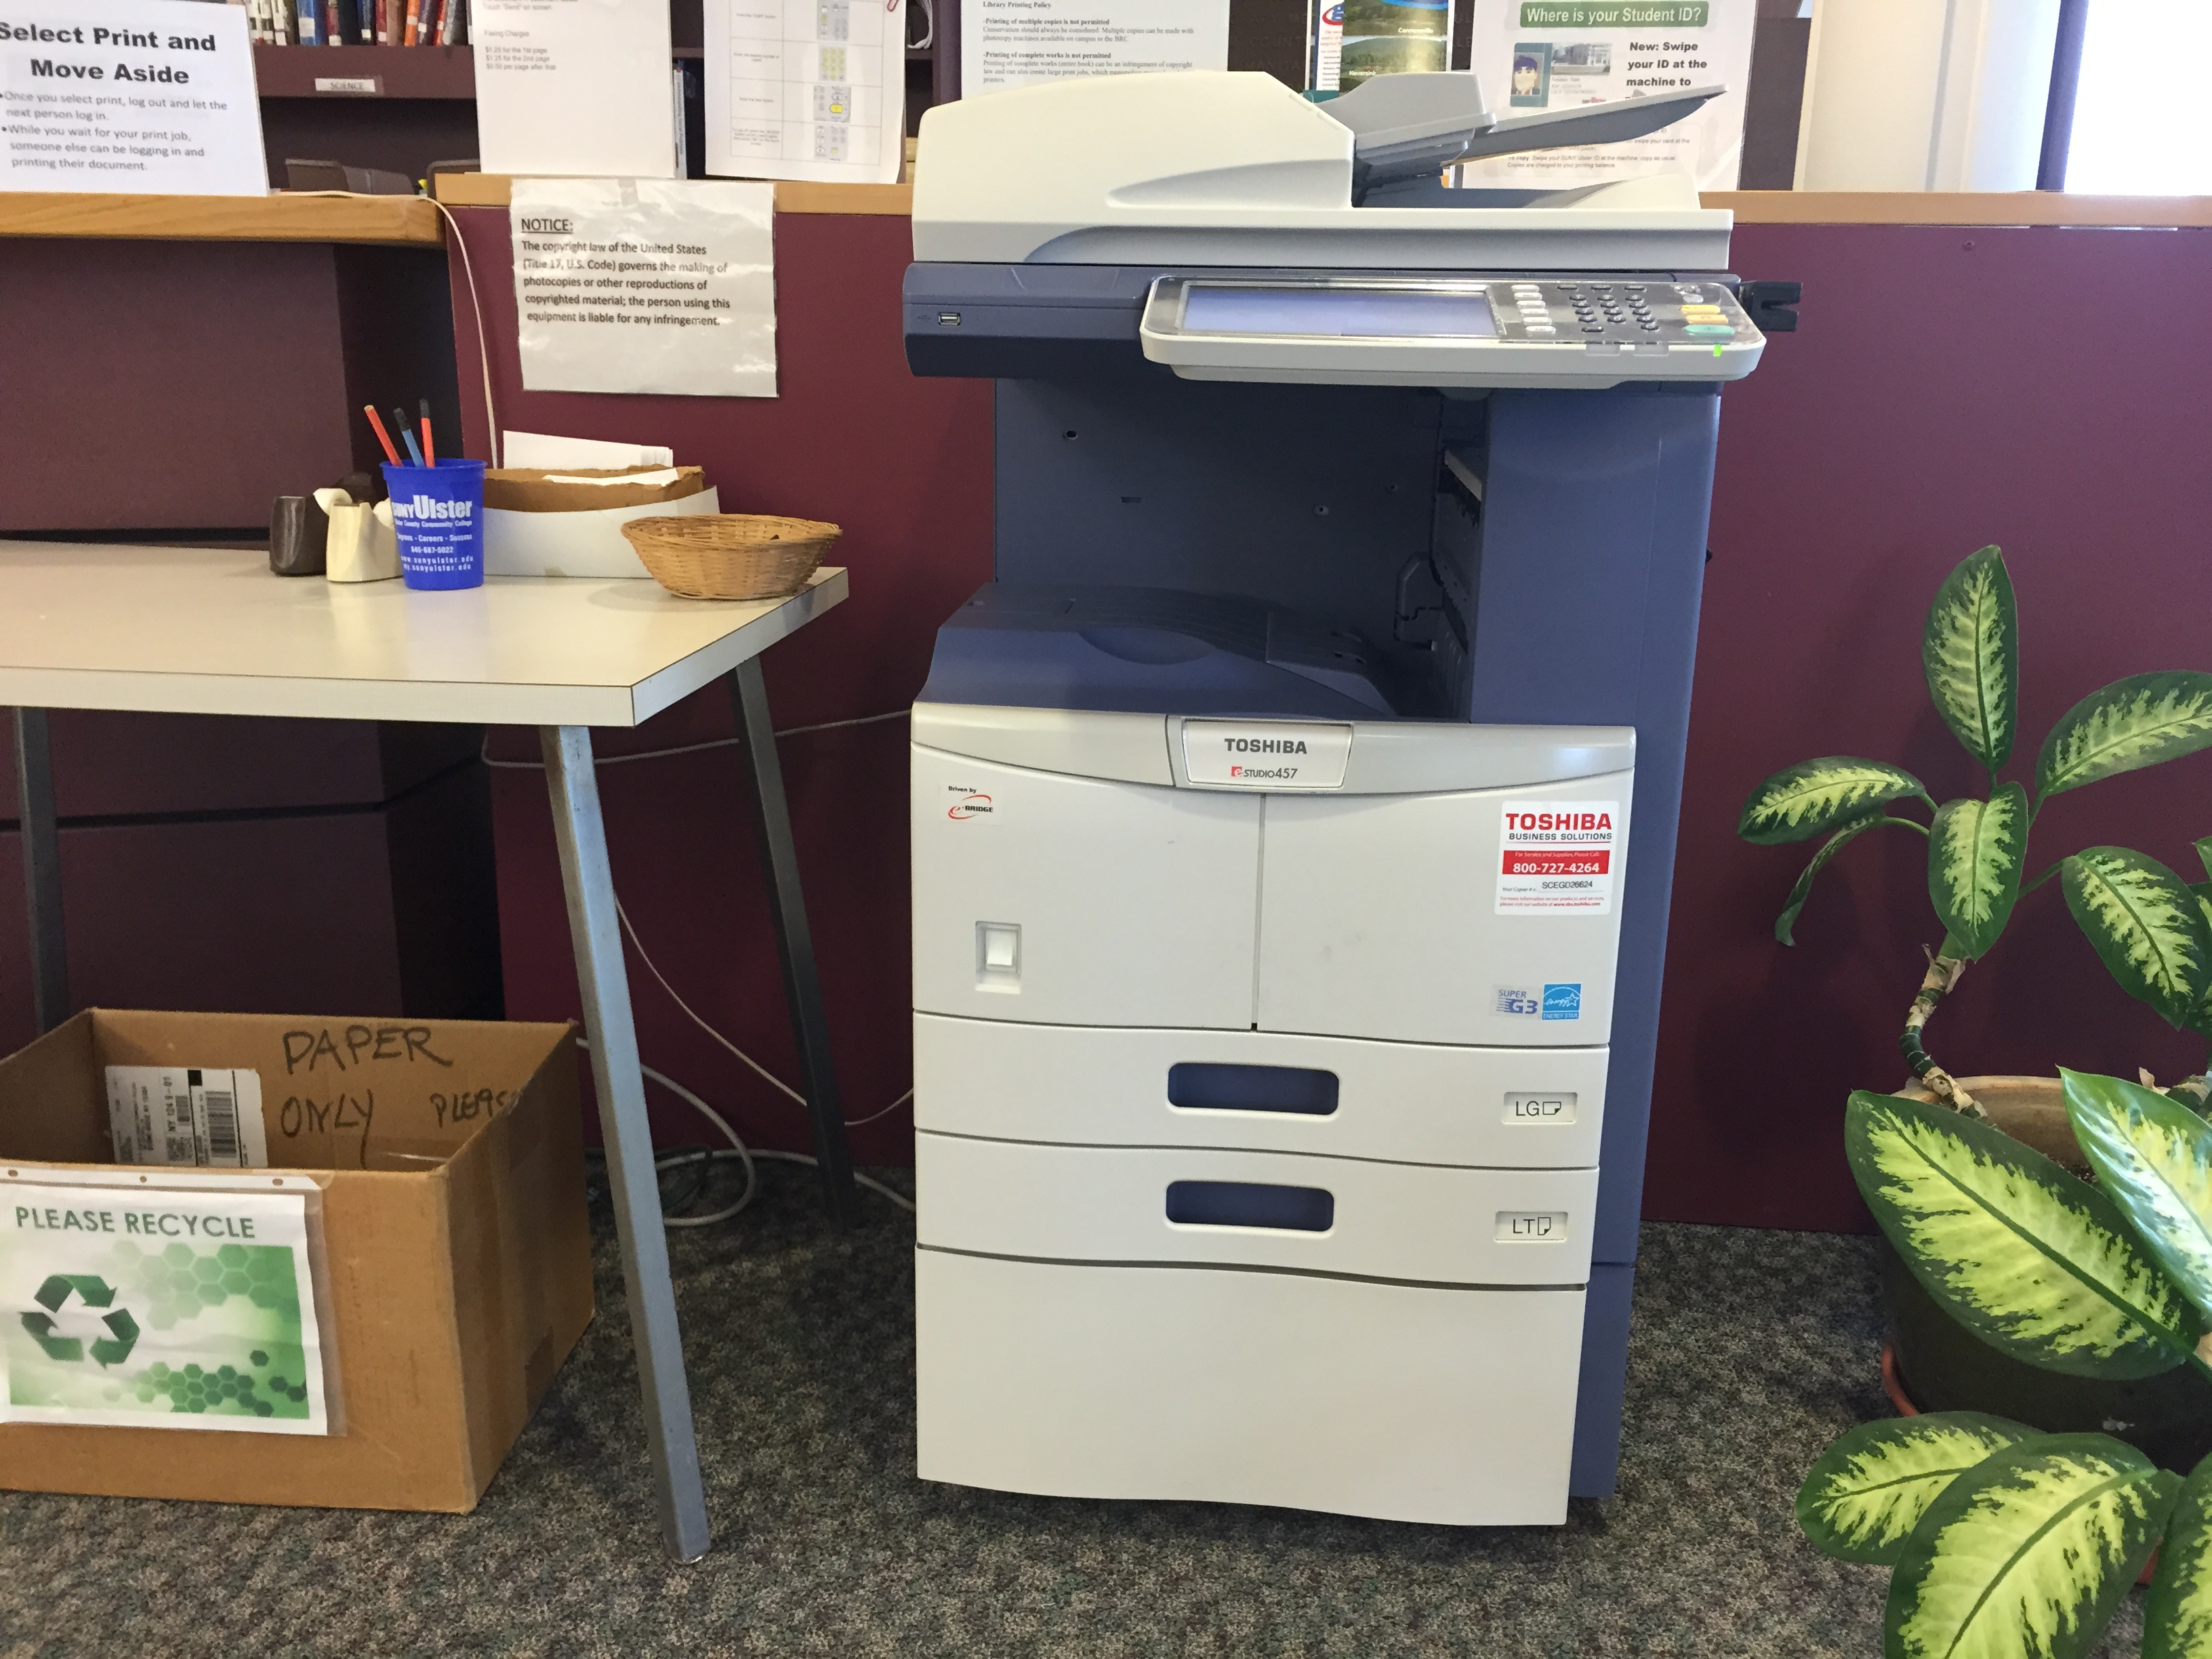 The library's Toshiba printer/copier/scanner/fax